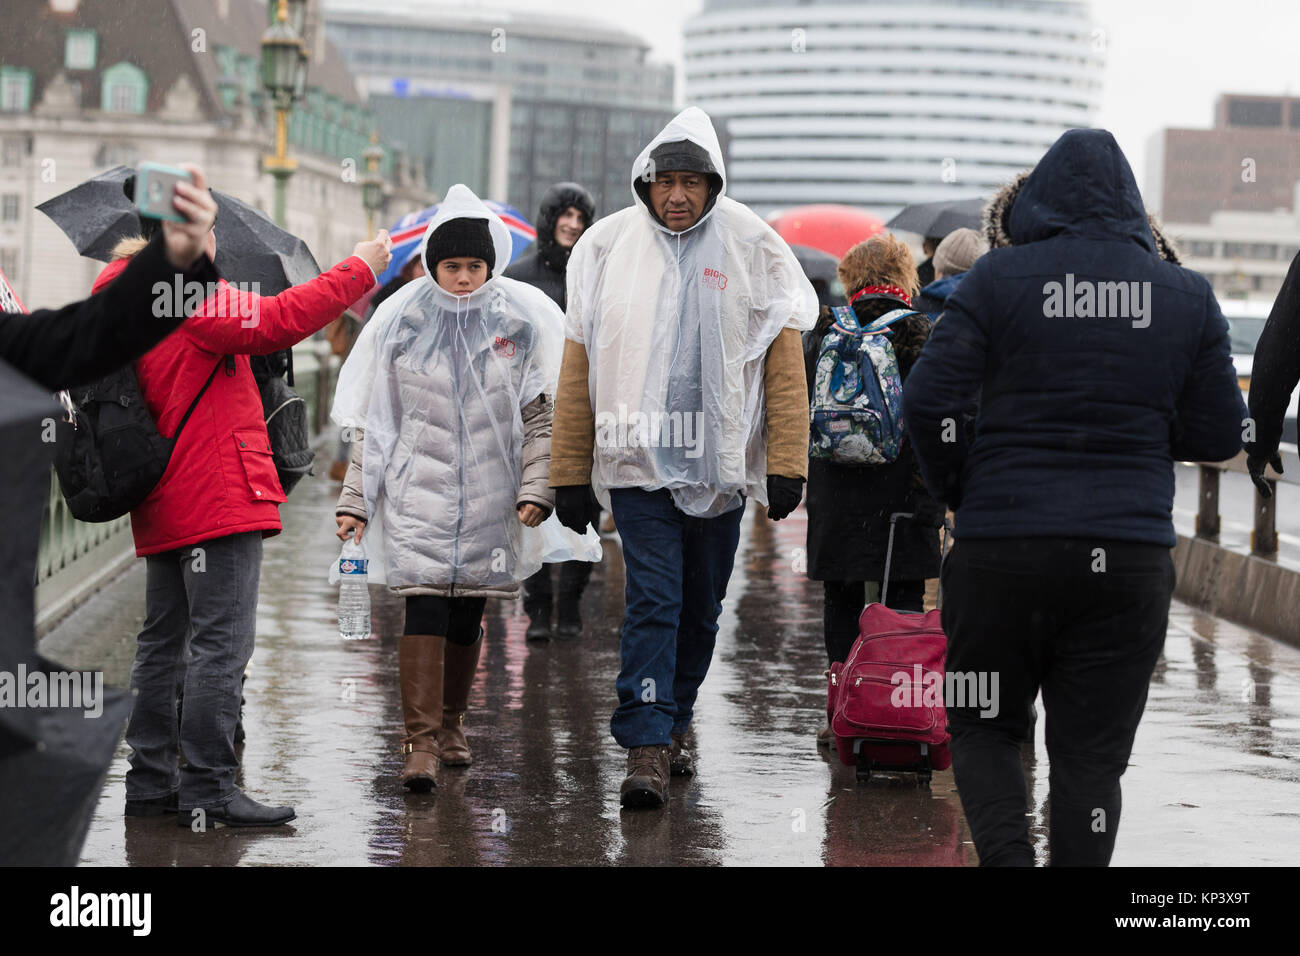 London, UK. 13th December 2017. Tourists wearing rain ponchos umbrellas walk in the rain on Westminster Bridge. - Stock Image